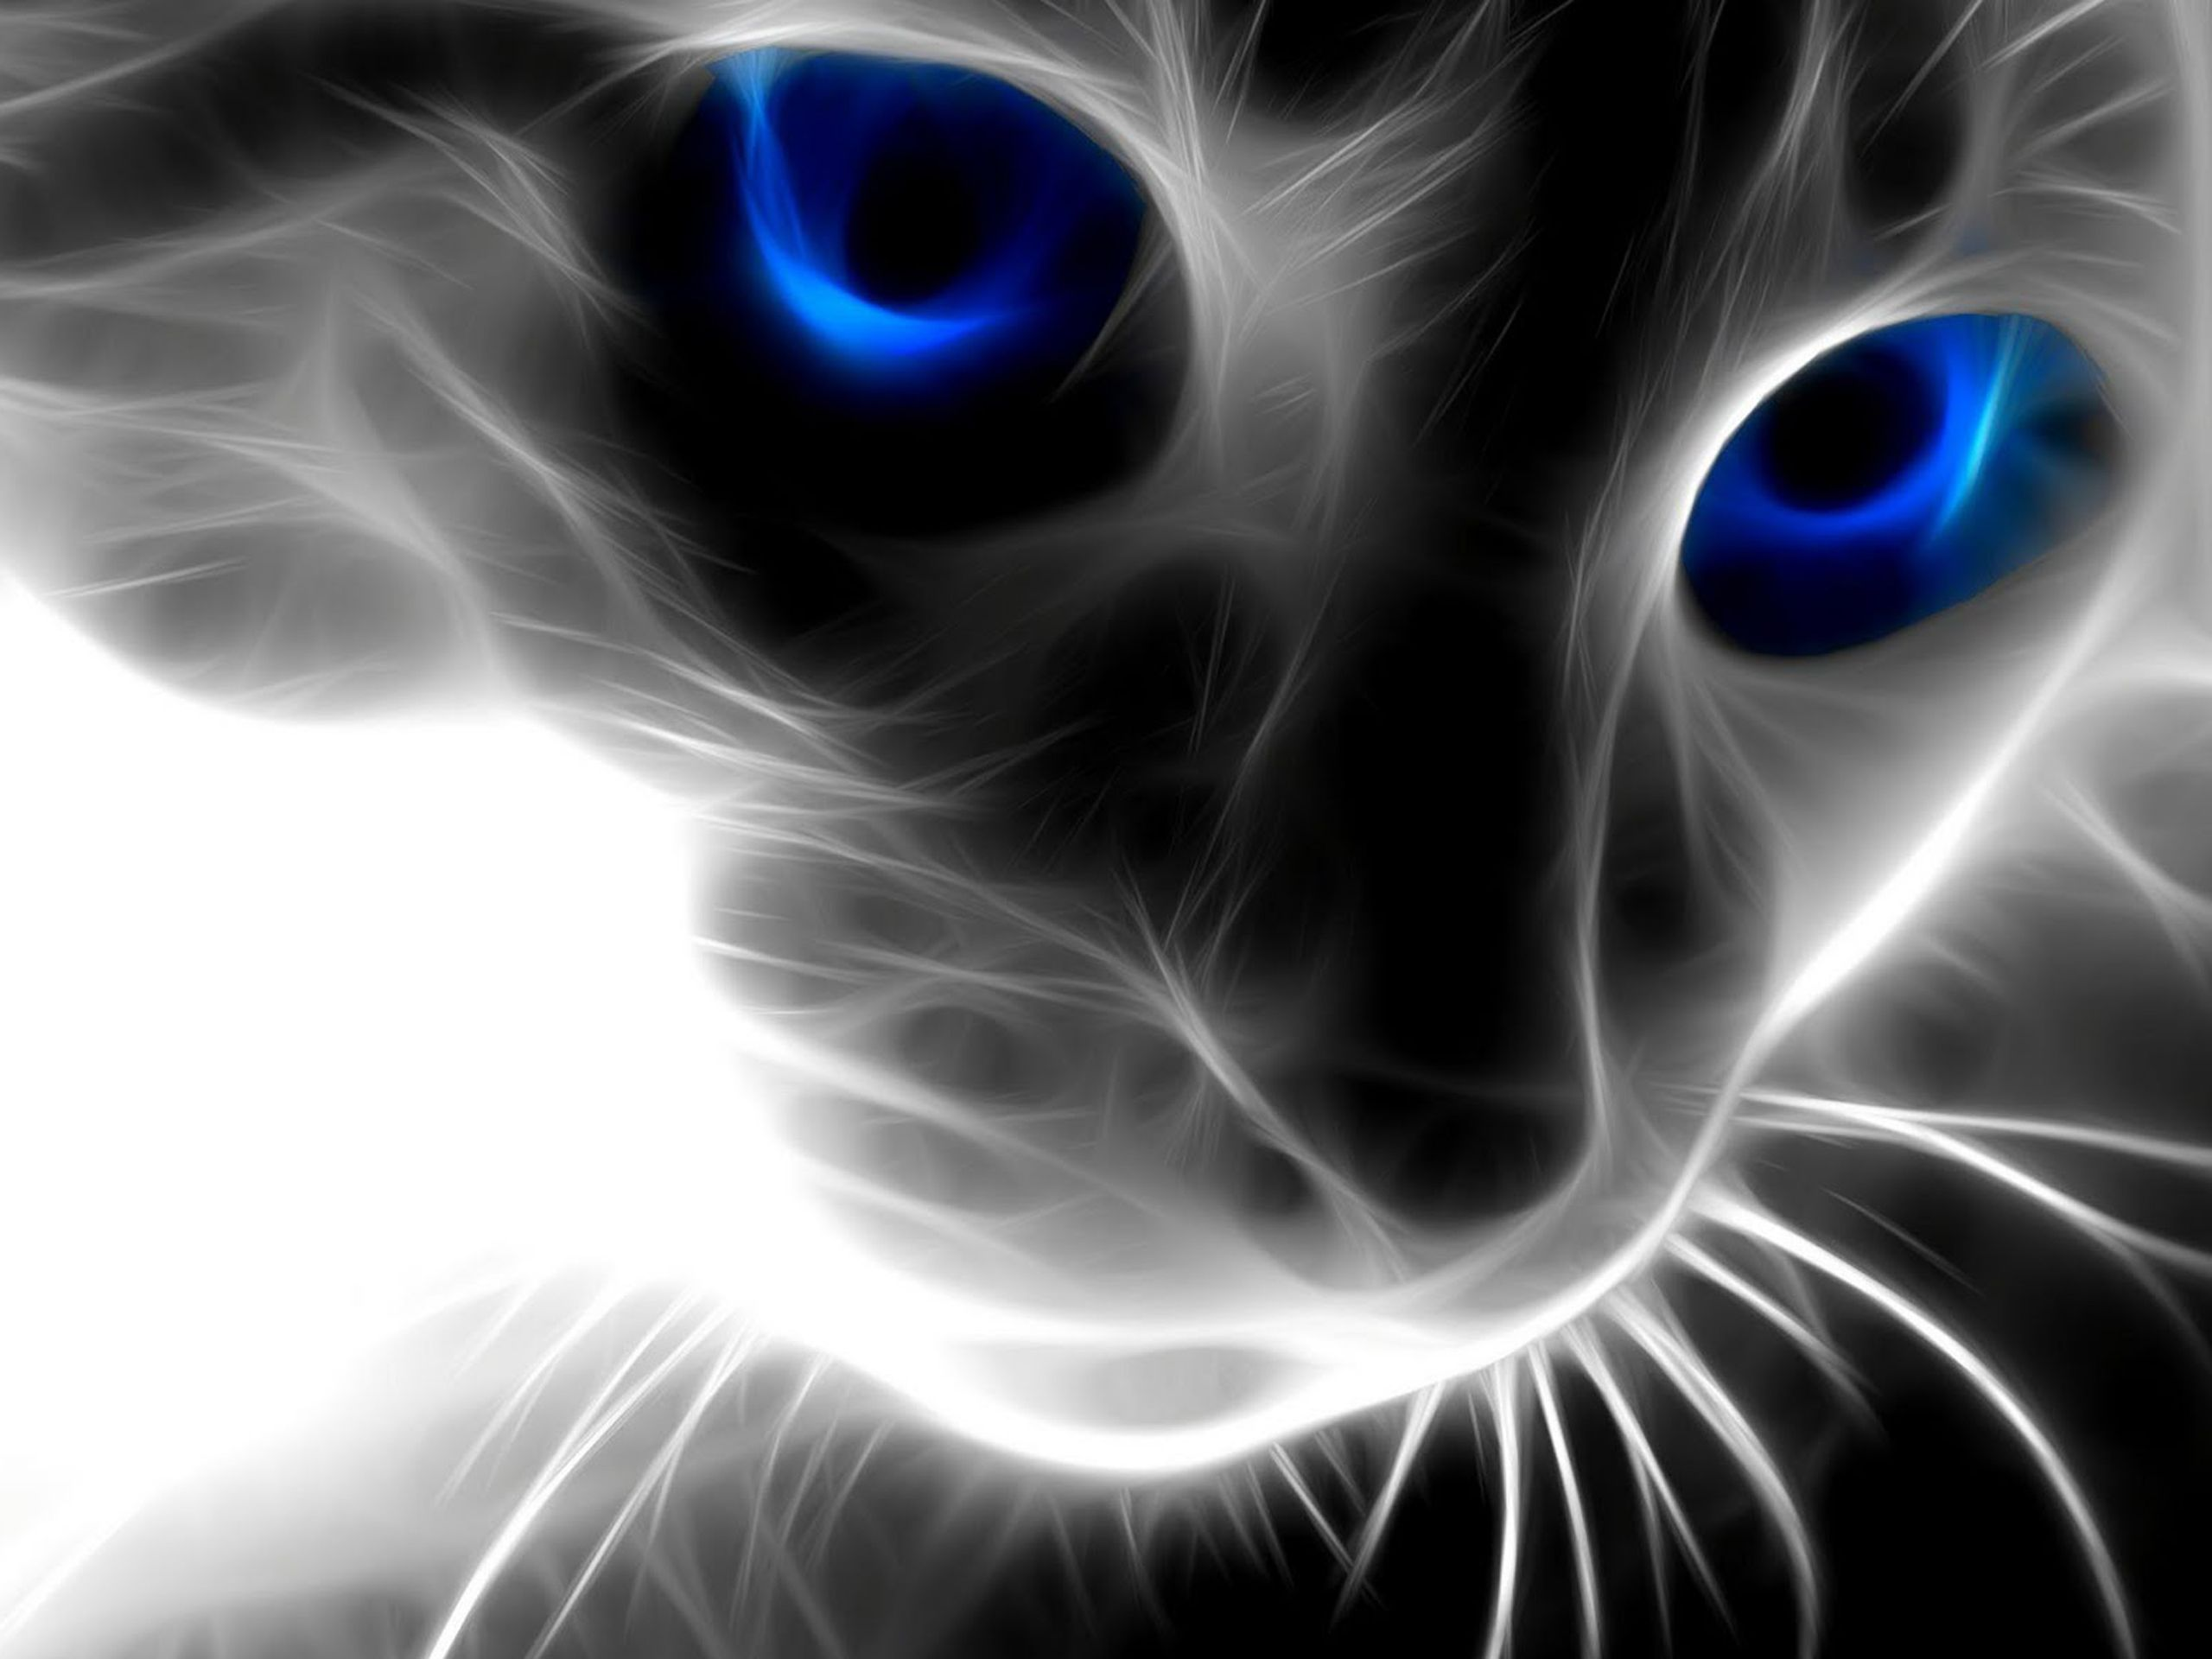 animals cat wallpapers latest1 3d abstract wallpaperpicturesphotos 2560x1920